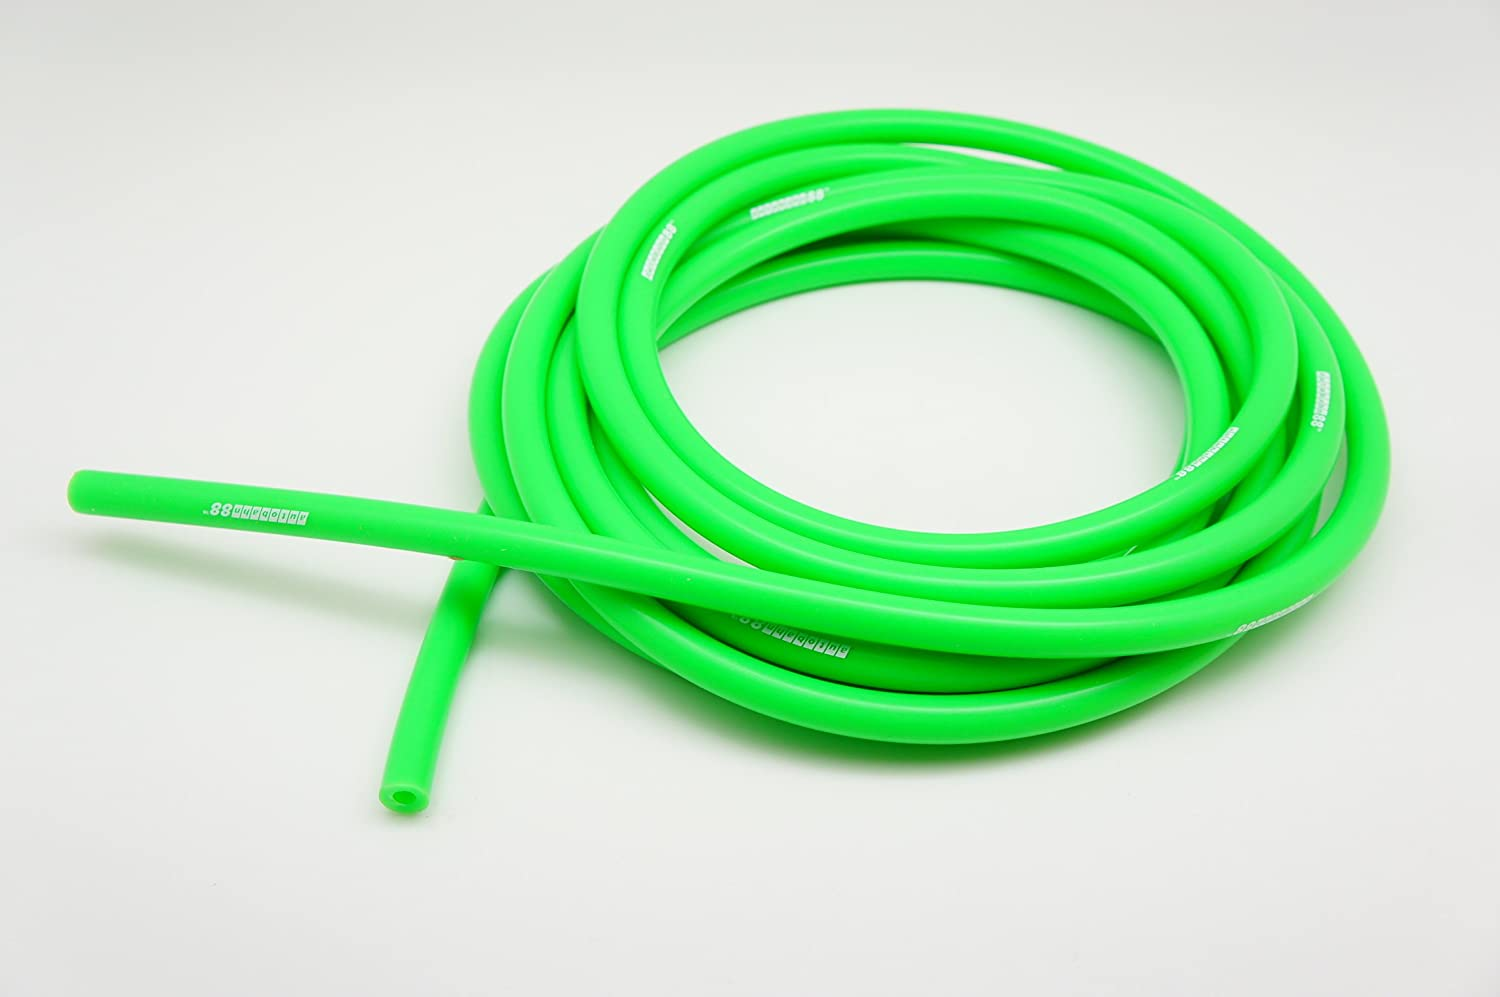 "Autobahn88 High Performance Silicone Vacuum Hose, ID 0.31"" (8mm), OD 0.55"" (14mm), 10 Feet per reel (3 Meter), Green"